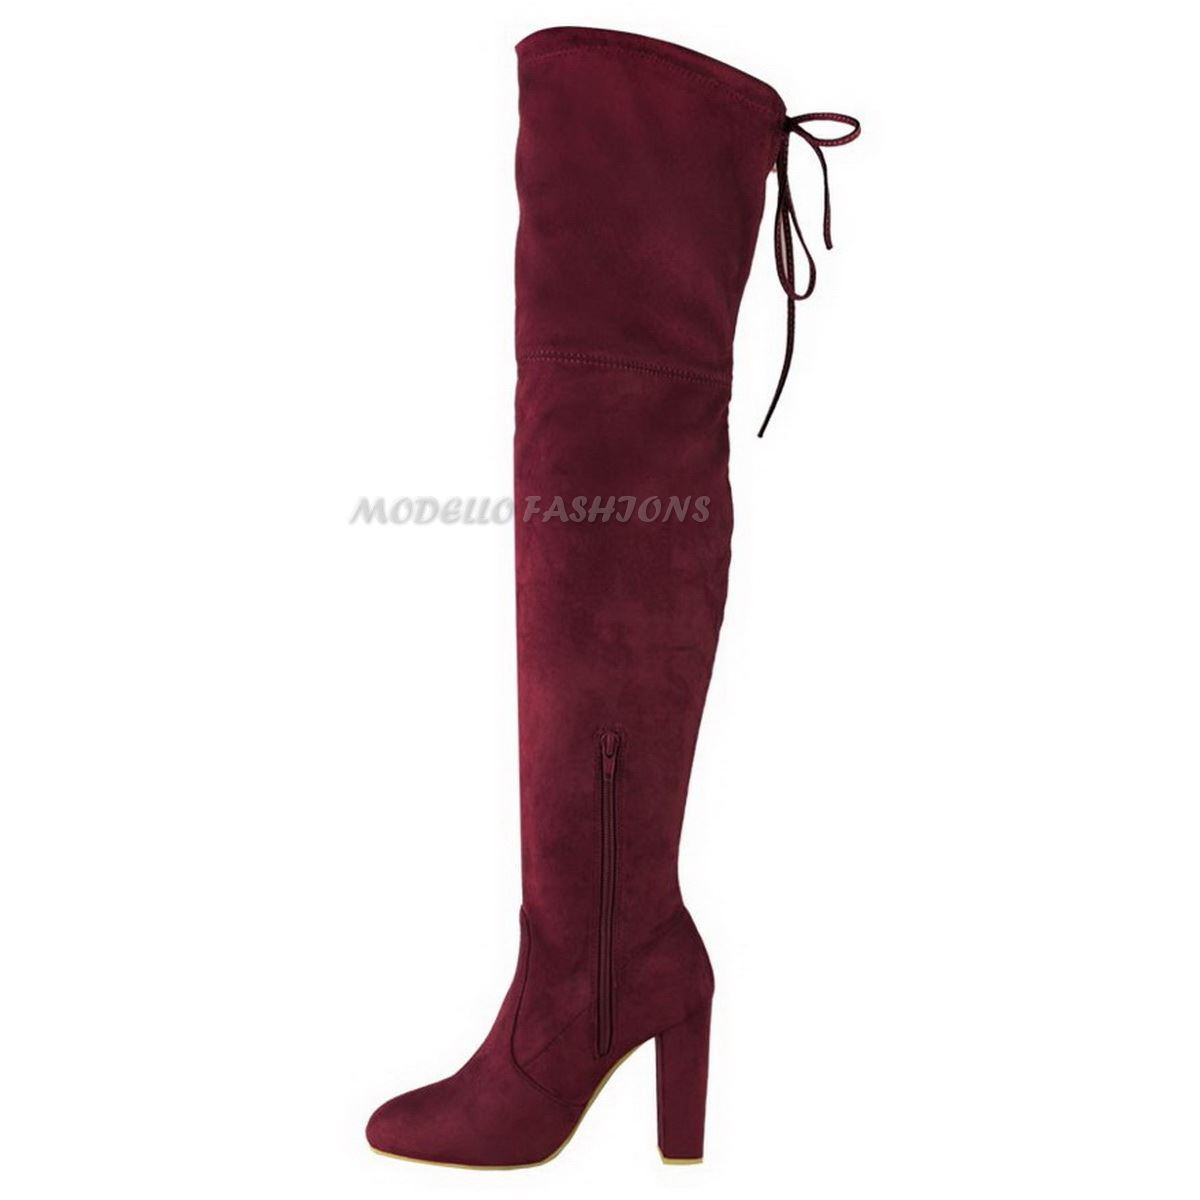 WOMENS-LADIES-THIGH-HIGH-BOOTS-OVER-THE-KNEE-PARTY-STRETCH-BLOCK-MID-HEEL-SIZE miniatuur 7